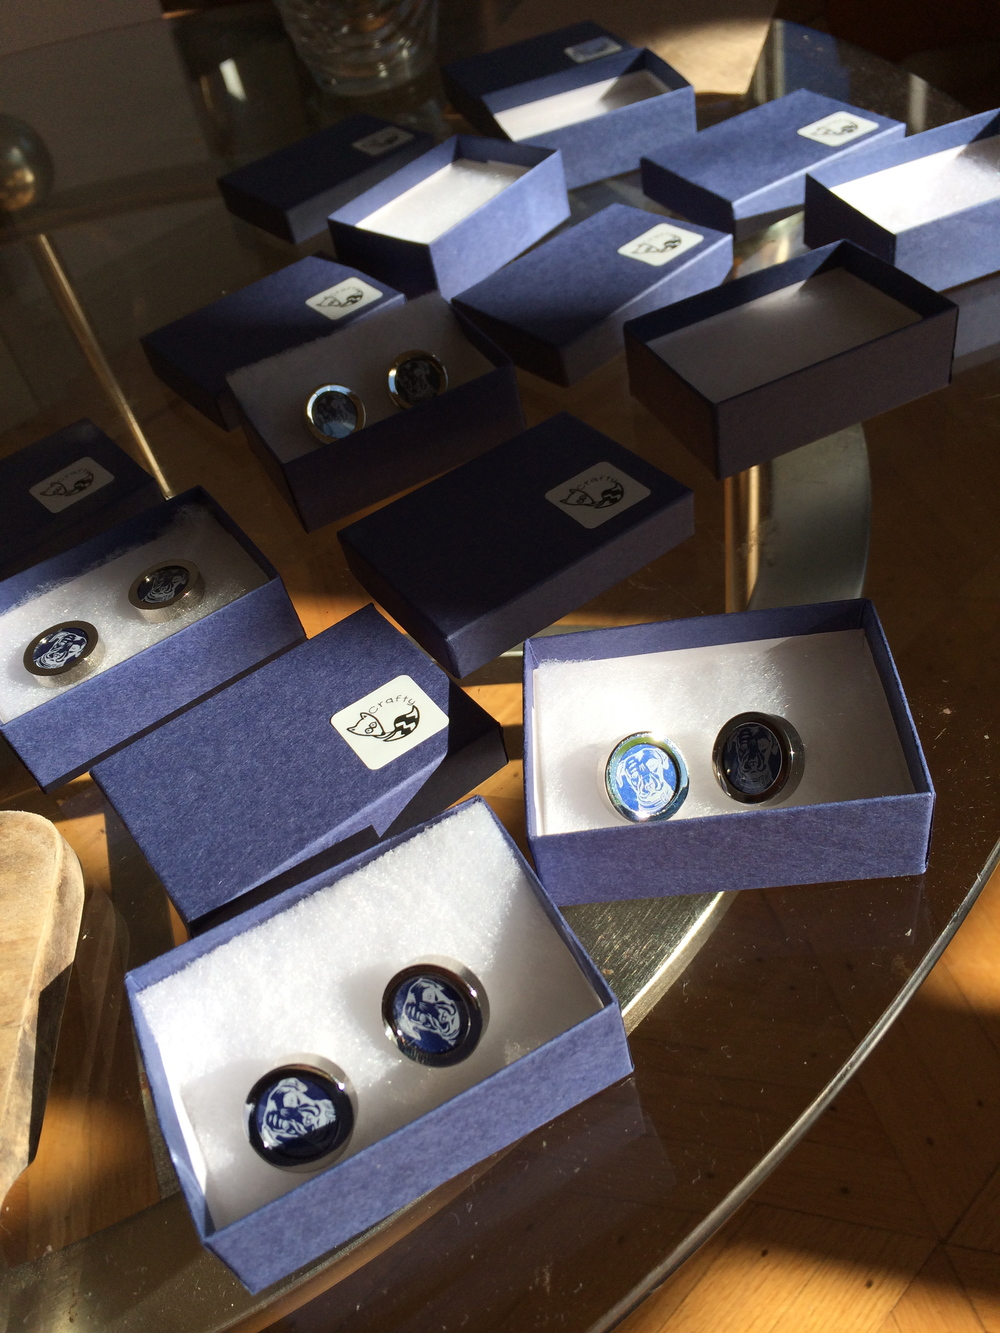 Blue Cufflinks Packaged for Shipment